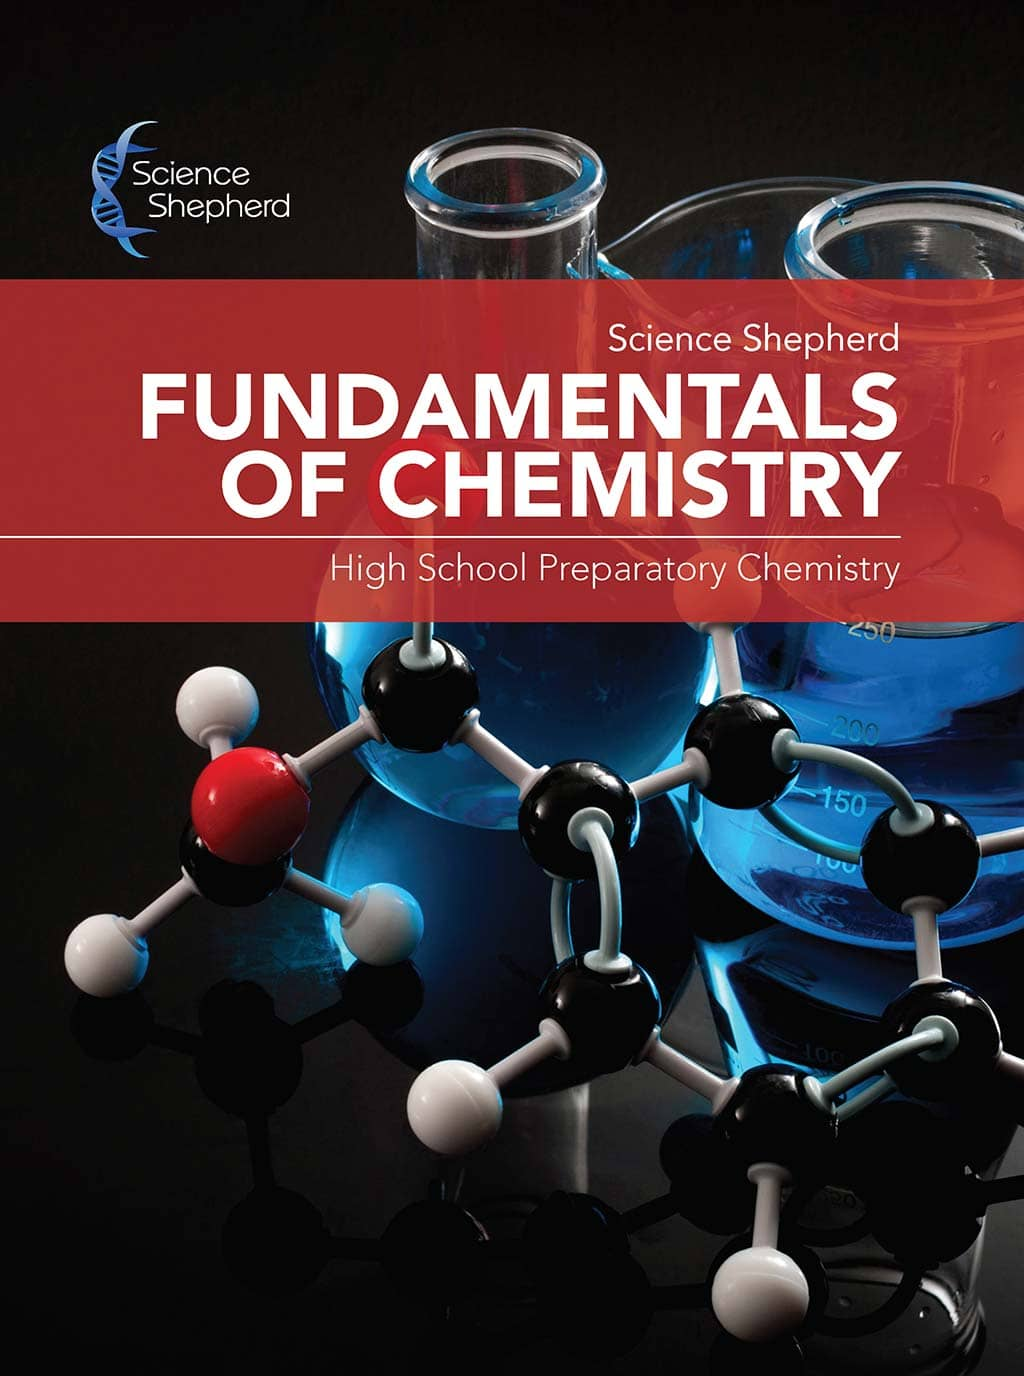 Fundamentals of Chemistry Textbook